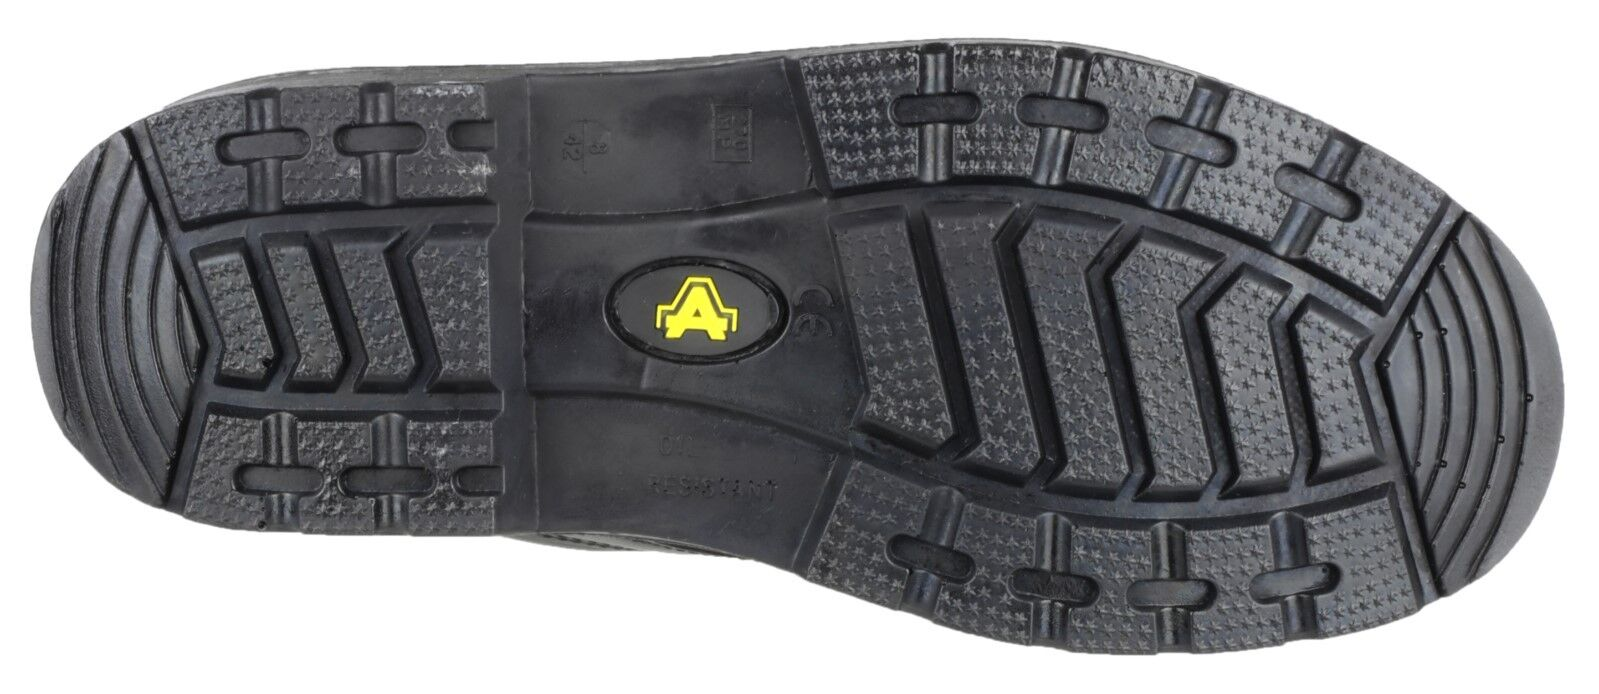 Amblers FS38C Safety  Industrial Uomo Composite Toe Capped Industrial  Boys Work Schuhes UK4-13 1dfdce